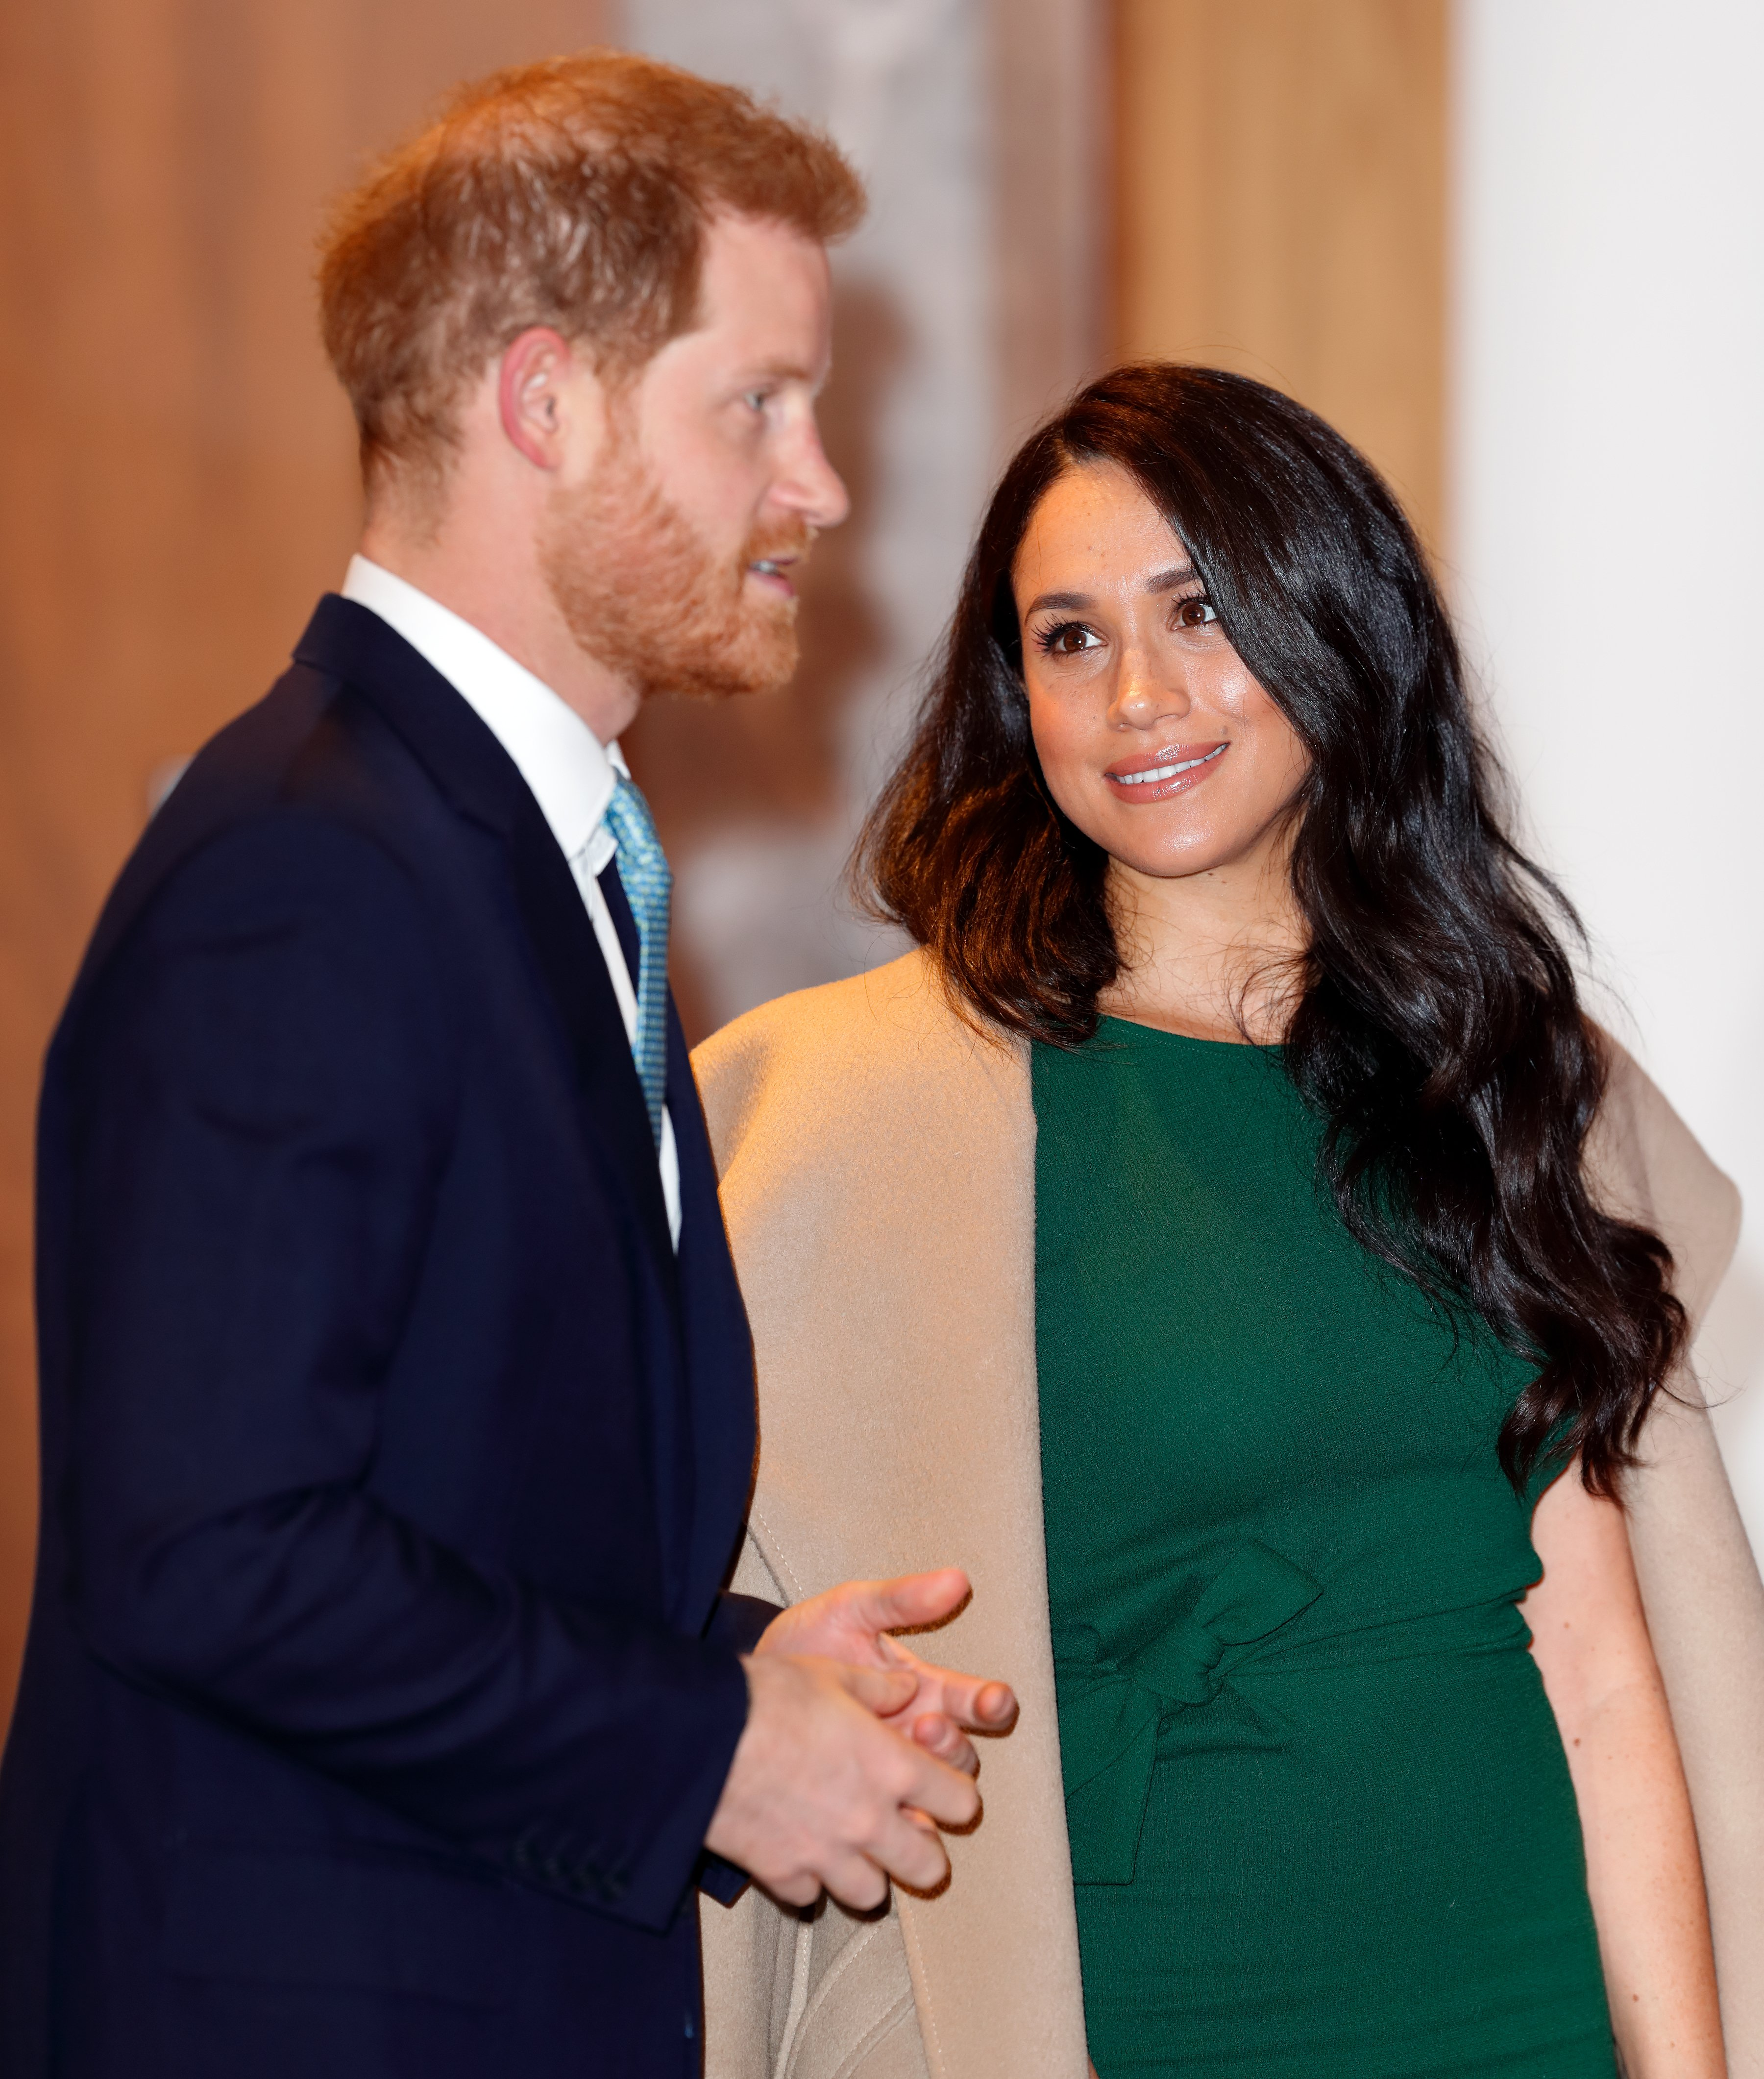 Prince Harry and Meghan Markle attend the WellChild awards at the Royal Lancaster Hotel on October 15, 2019 in London, England | Photo: Getty Images